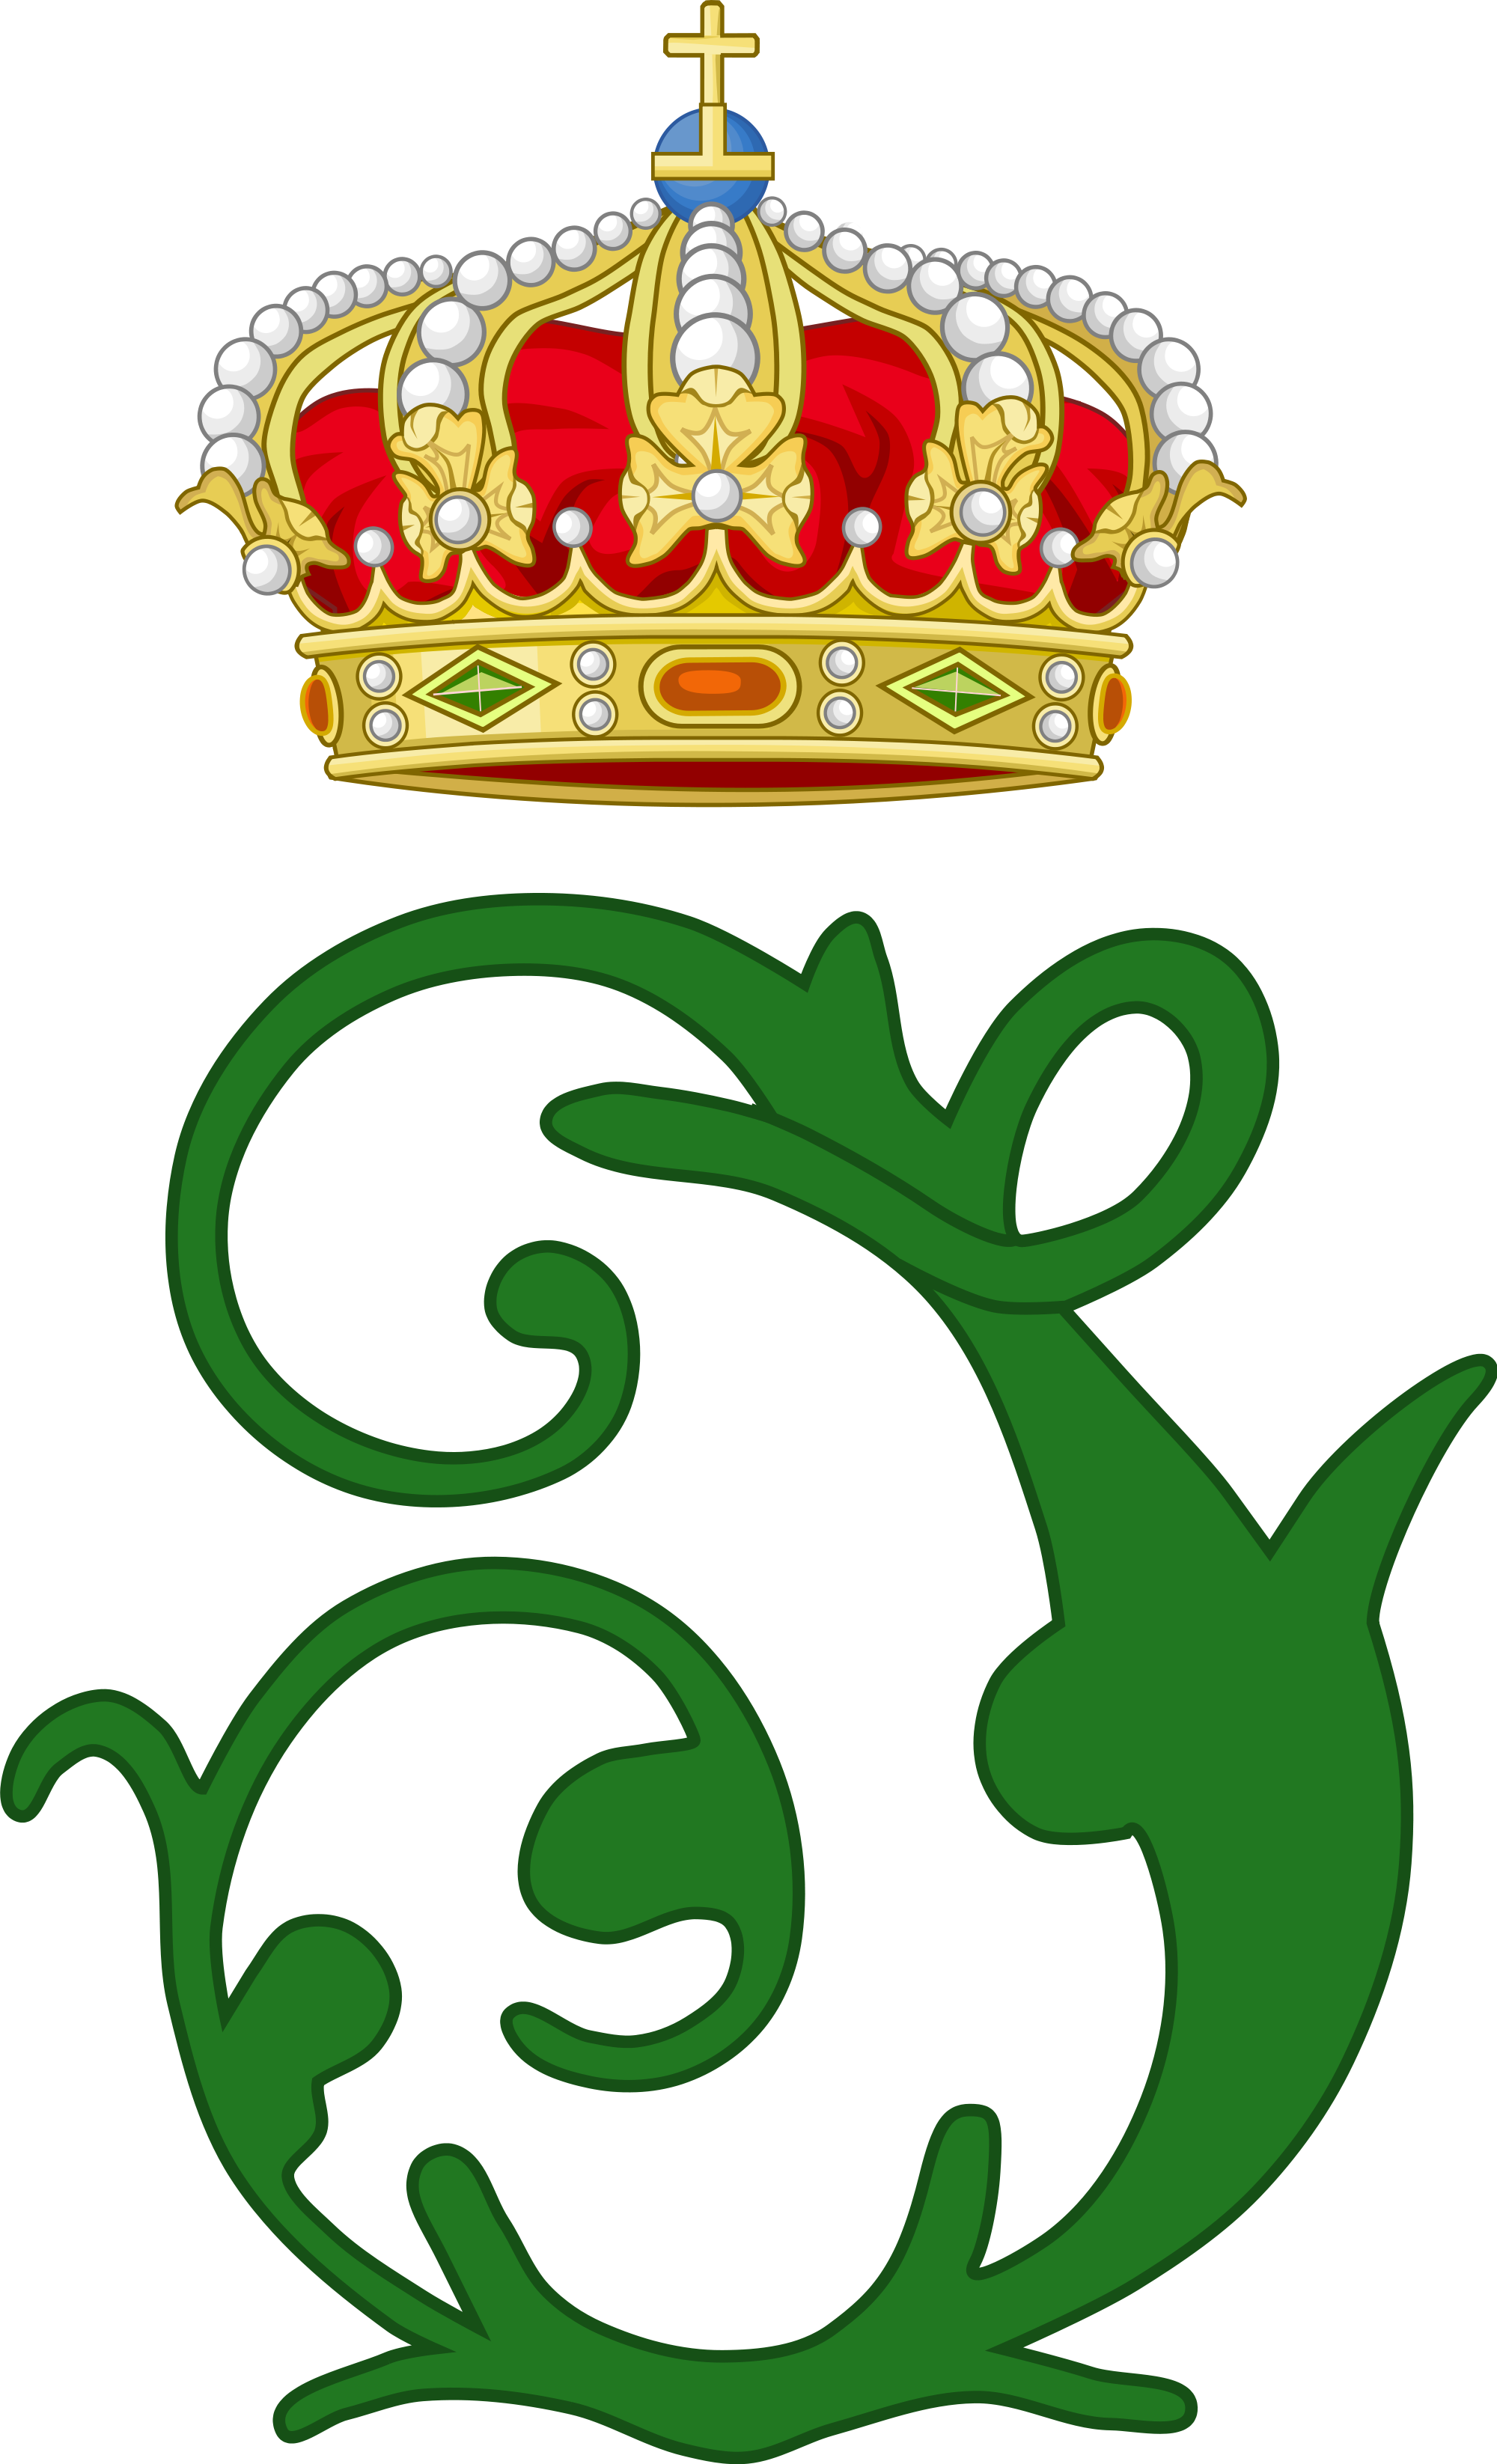 File:Royal Monogram of King Johann of Saxony.svg.